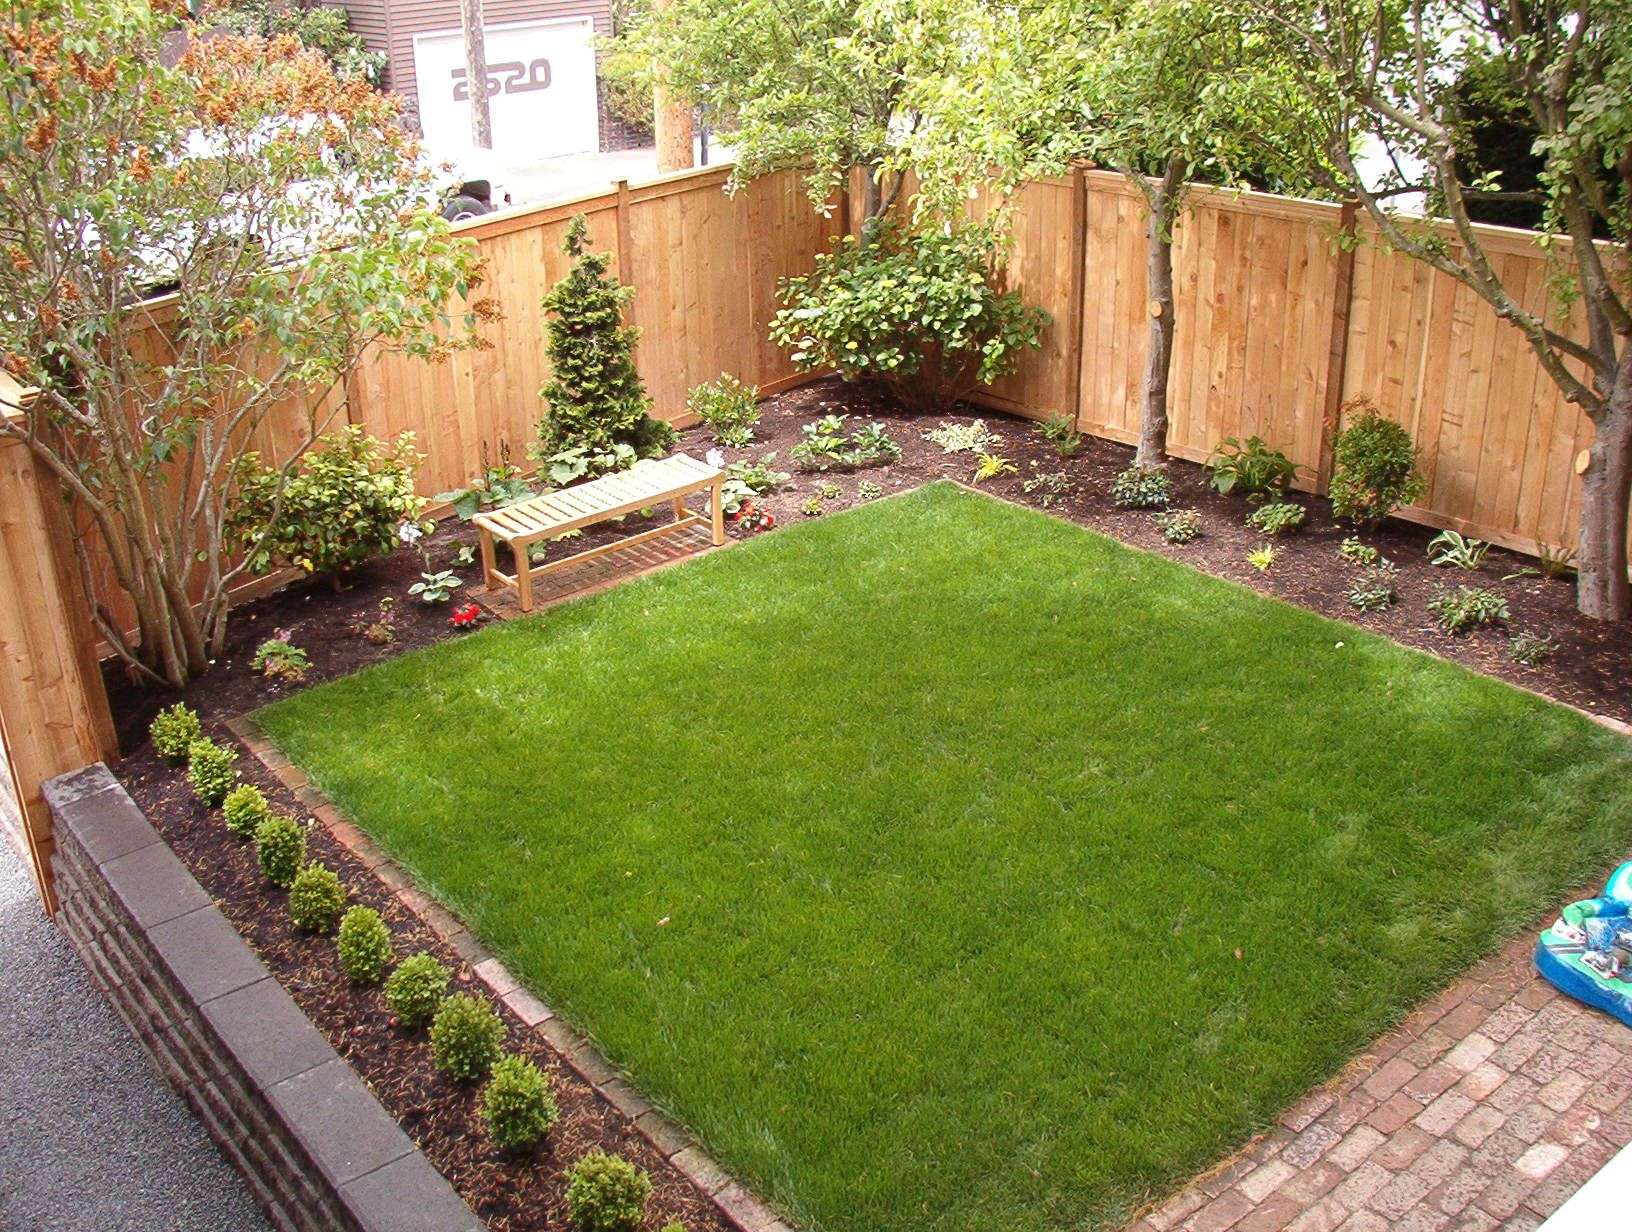 Sod lawn for children to play on landscape ideas for Lawn and garden landscaping ideas